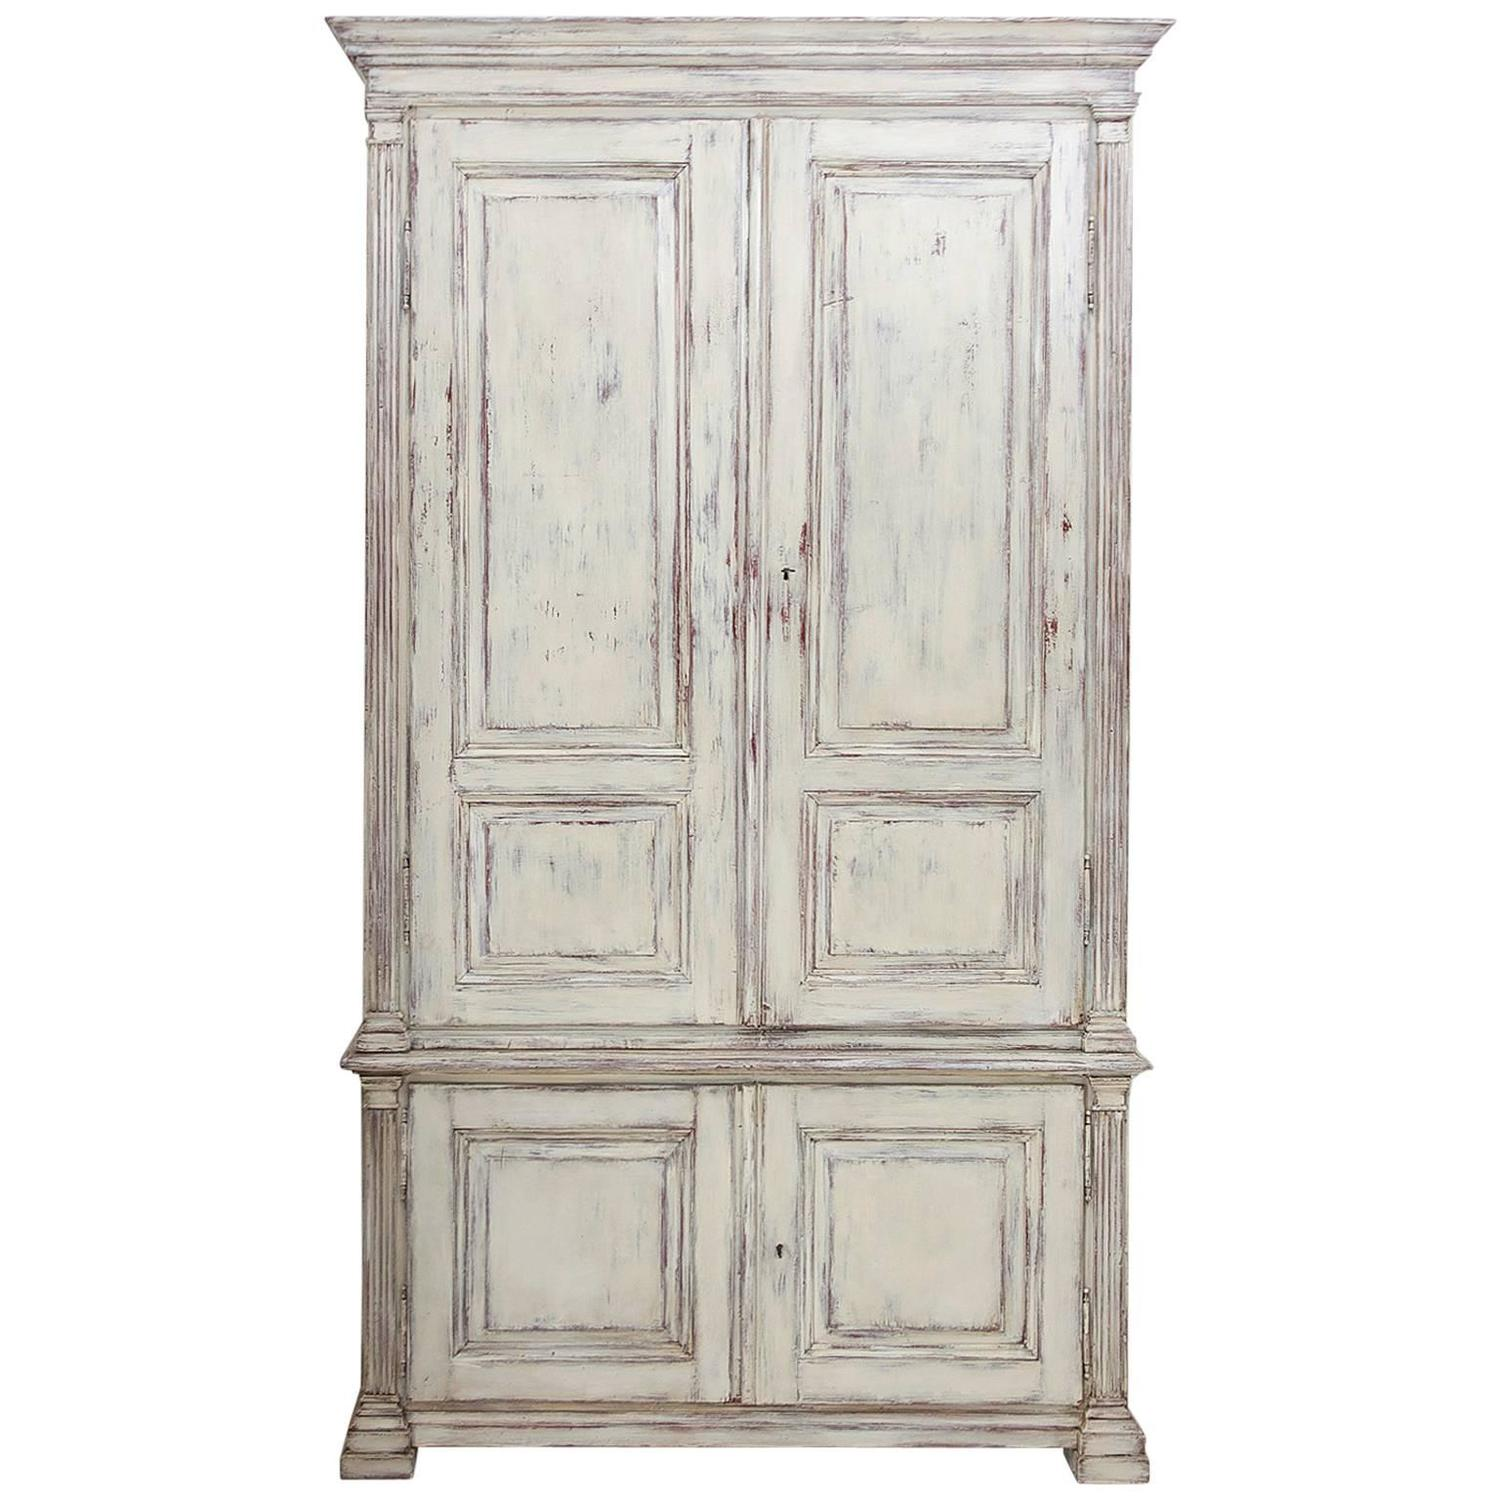 Painted Swedish Armoire with Raised Panels and Fluted Pilasters, circa 1850 - Painted Antiques Antique Painted Furniture Vintage Painted